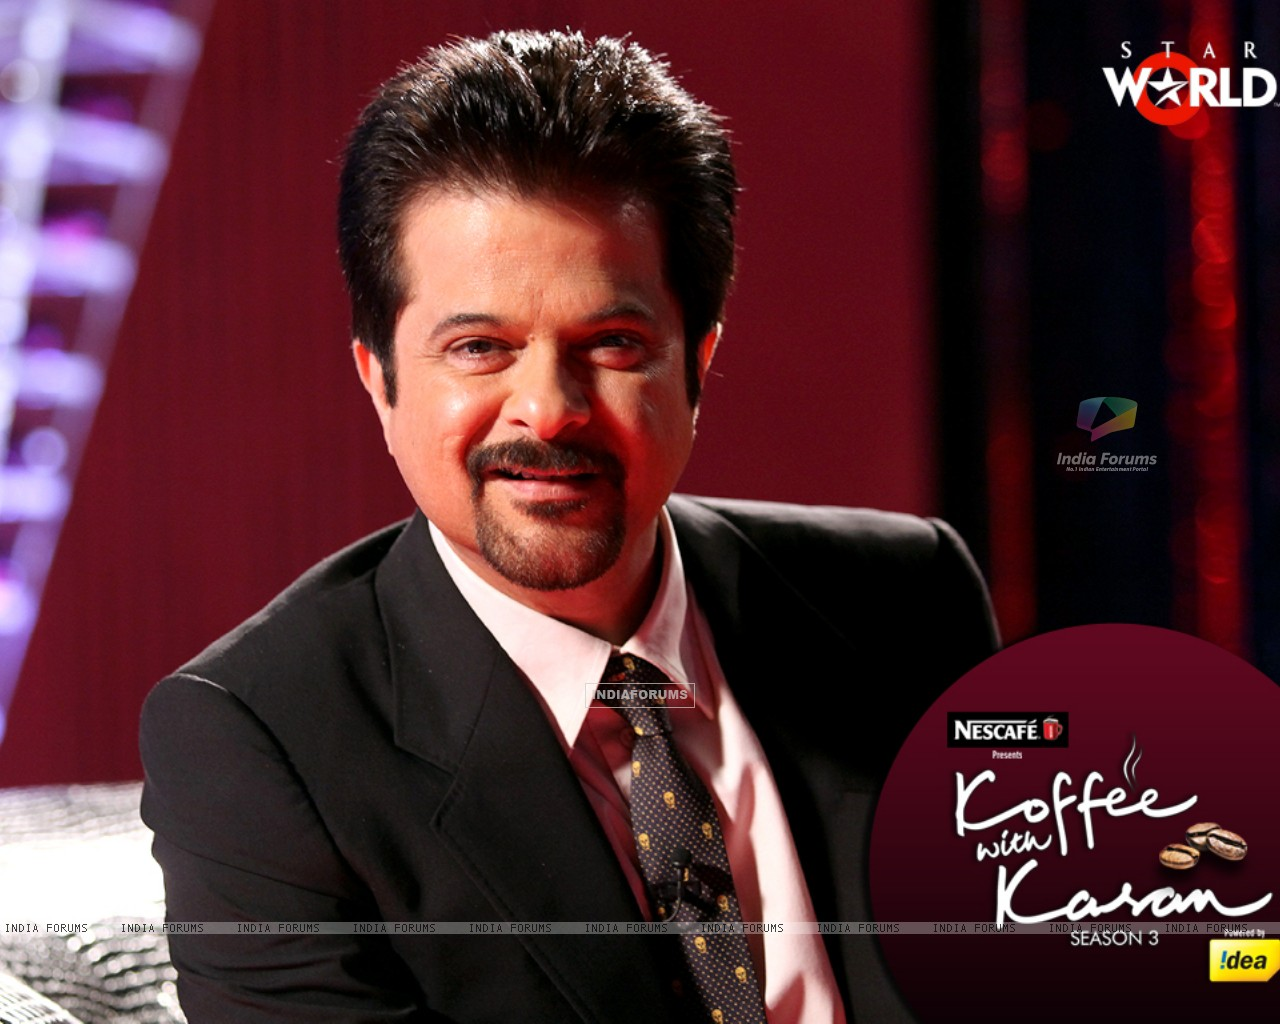 Anil Kapoor on Koffee with Karan Season 3 (149342) size:1280x1024